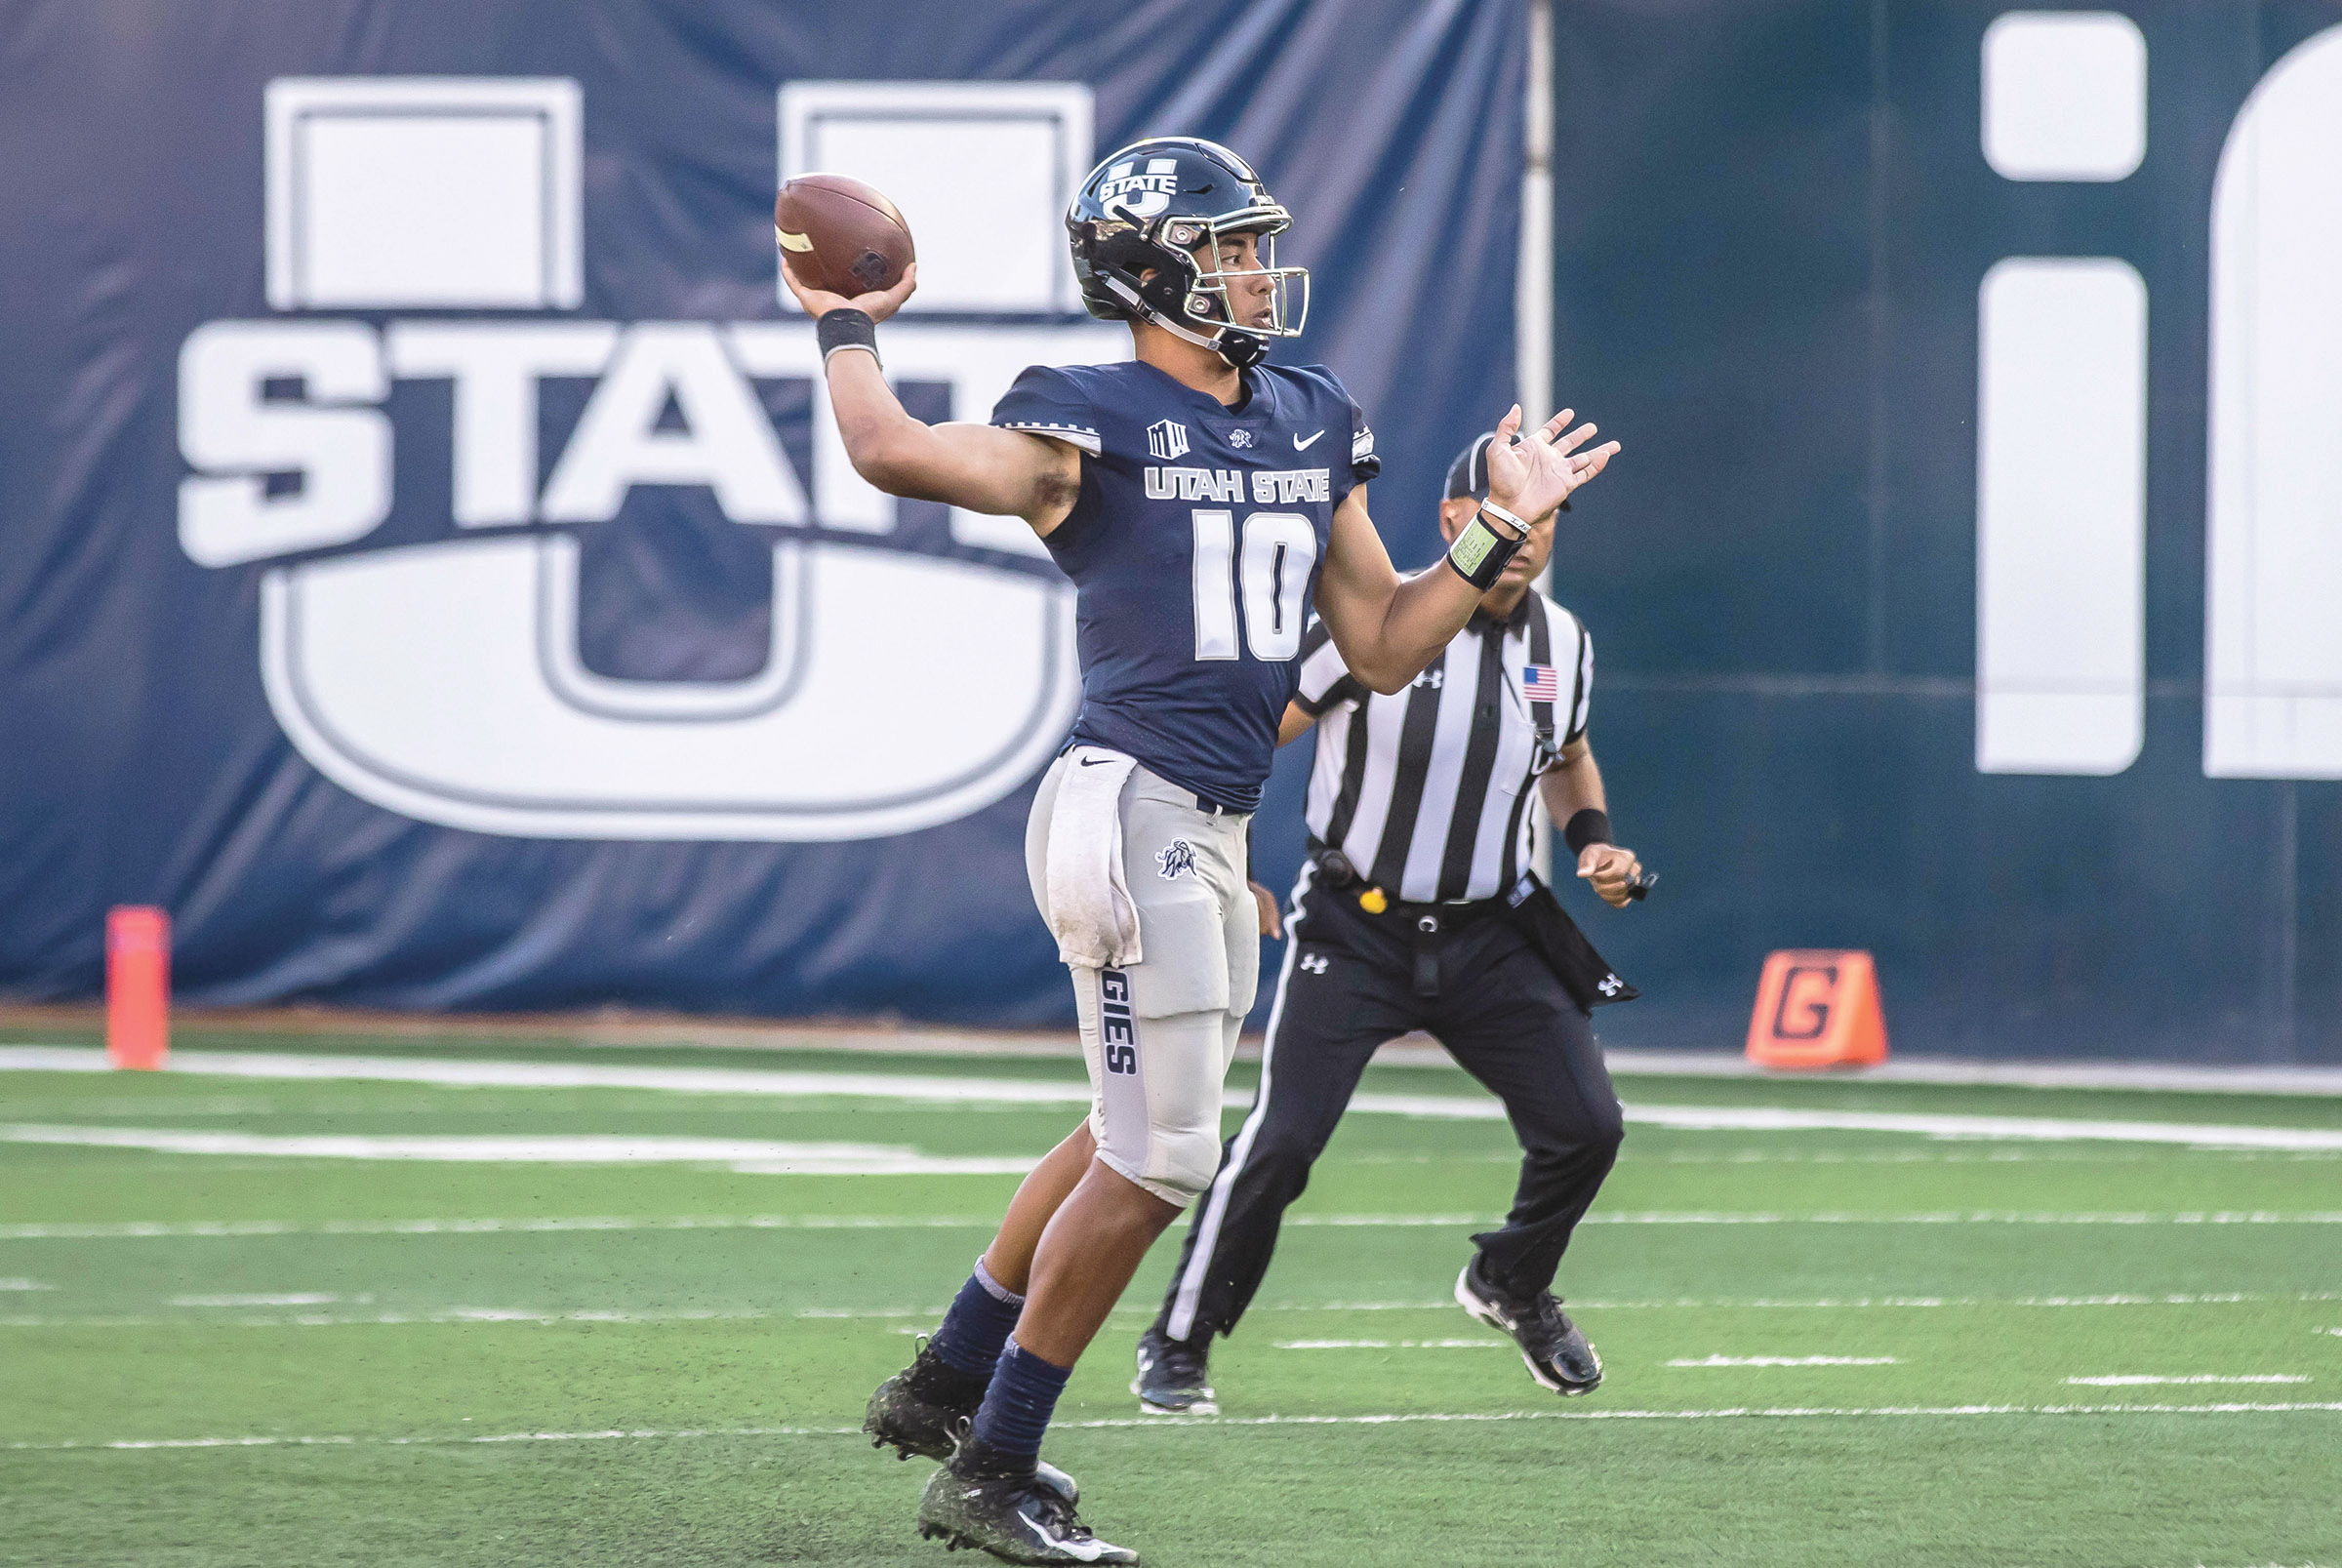 Jordan Love in one of the top players in MWC heading into the fall. (Photo Credit: USU Athletics)